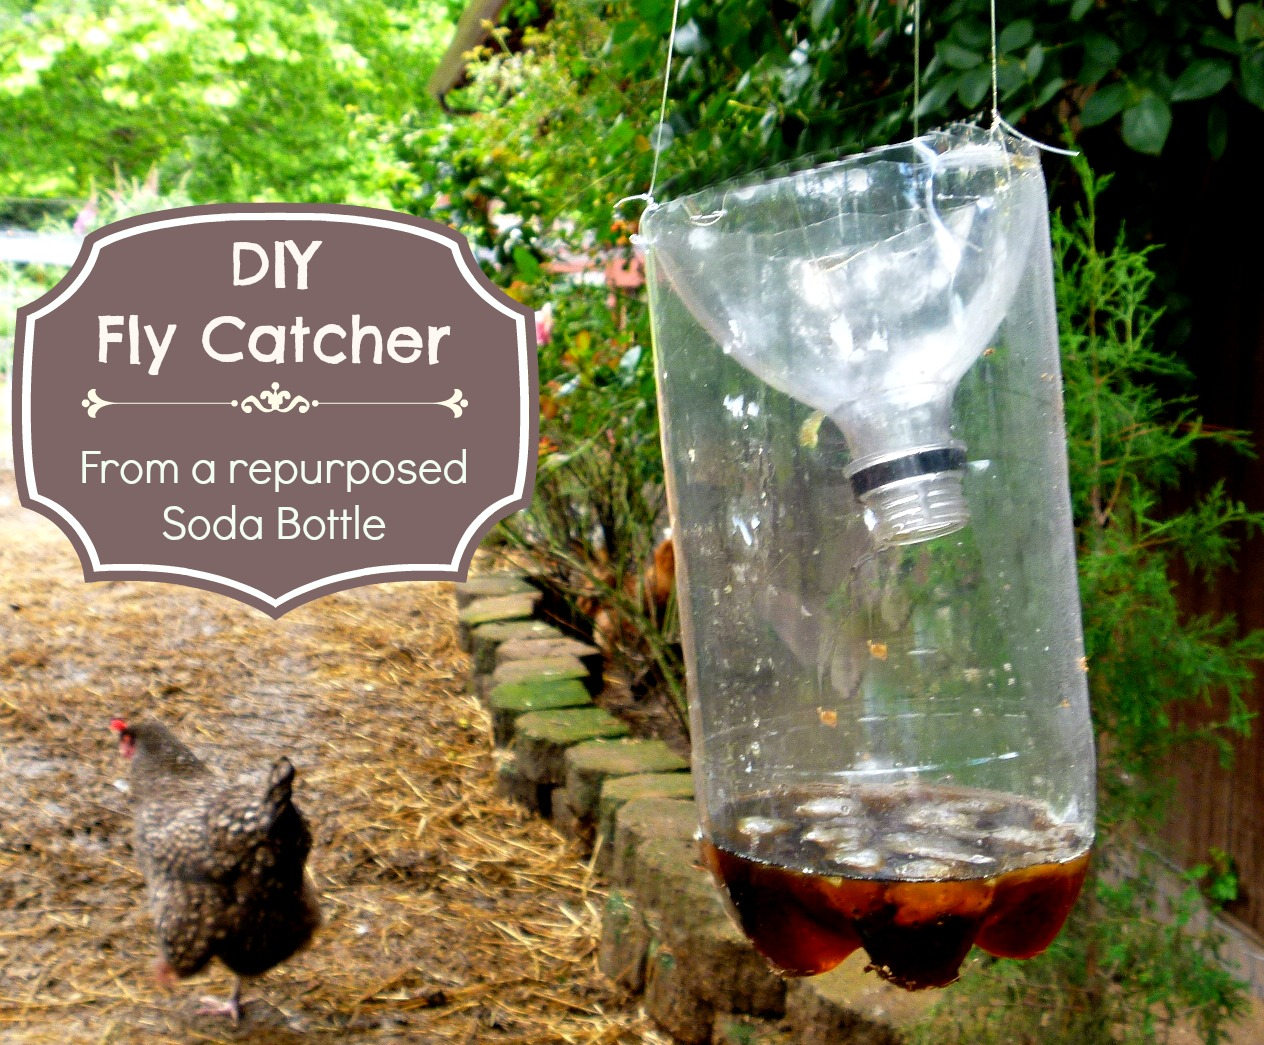 Got Flies ? Make This Easy DIY Fly Catcher out of a Soda